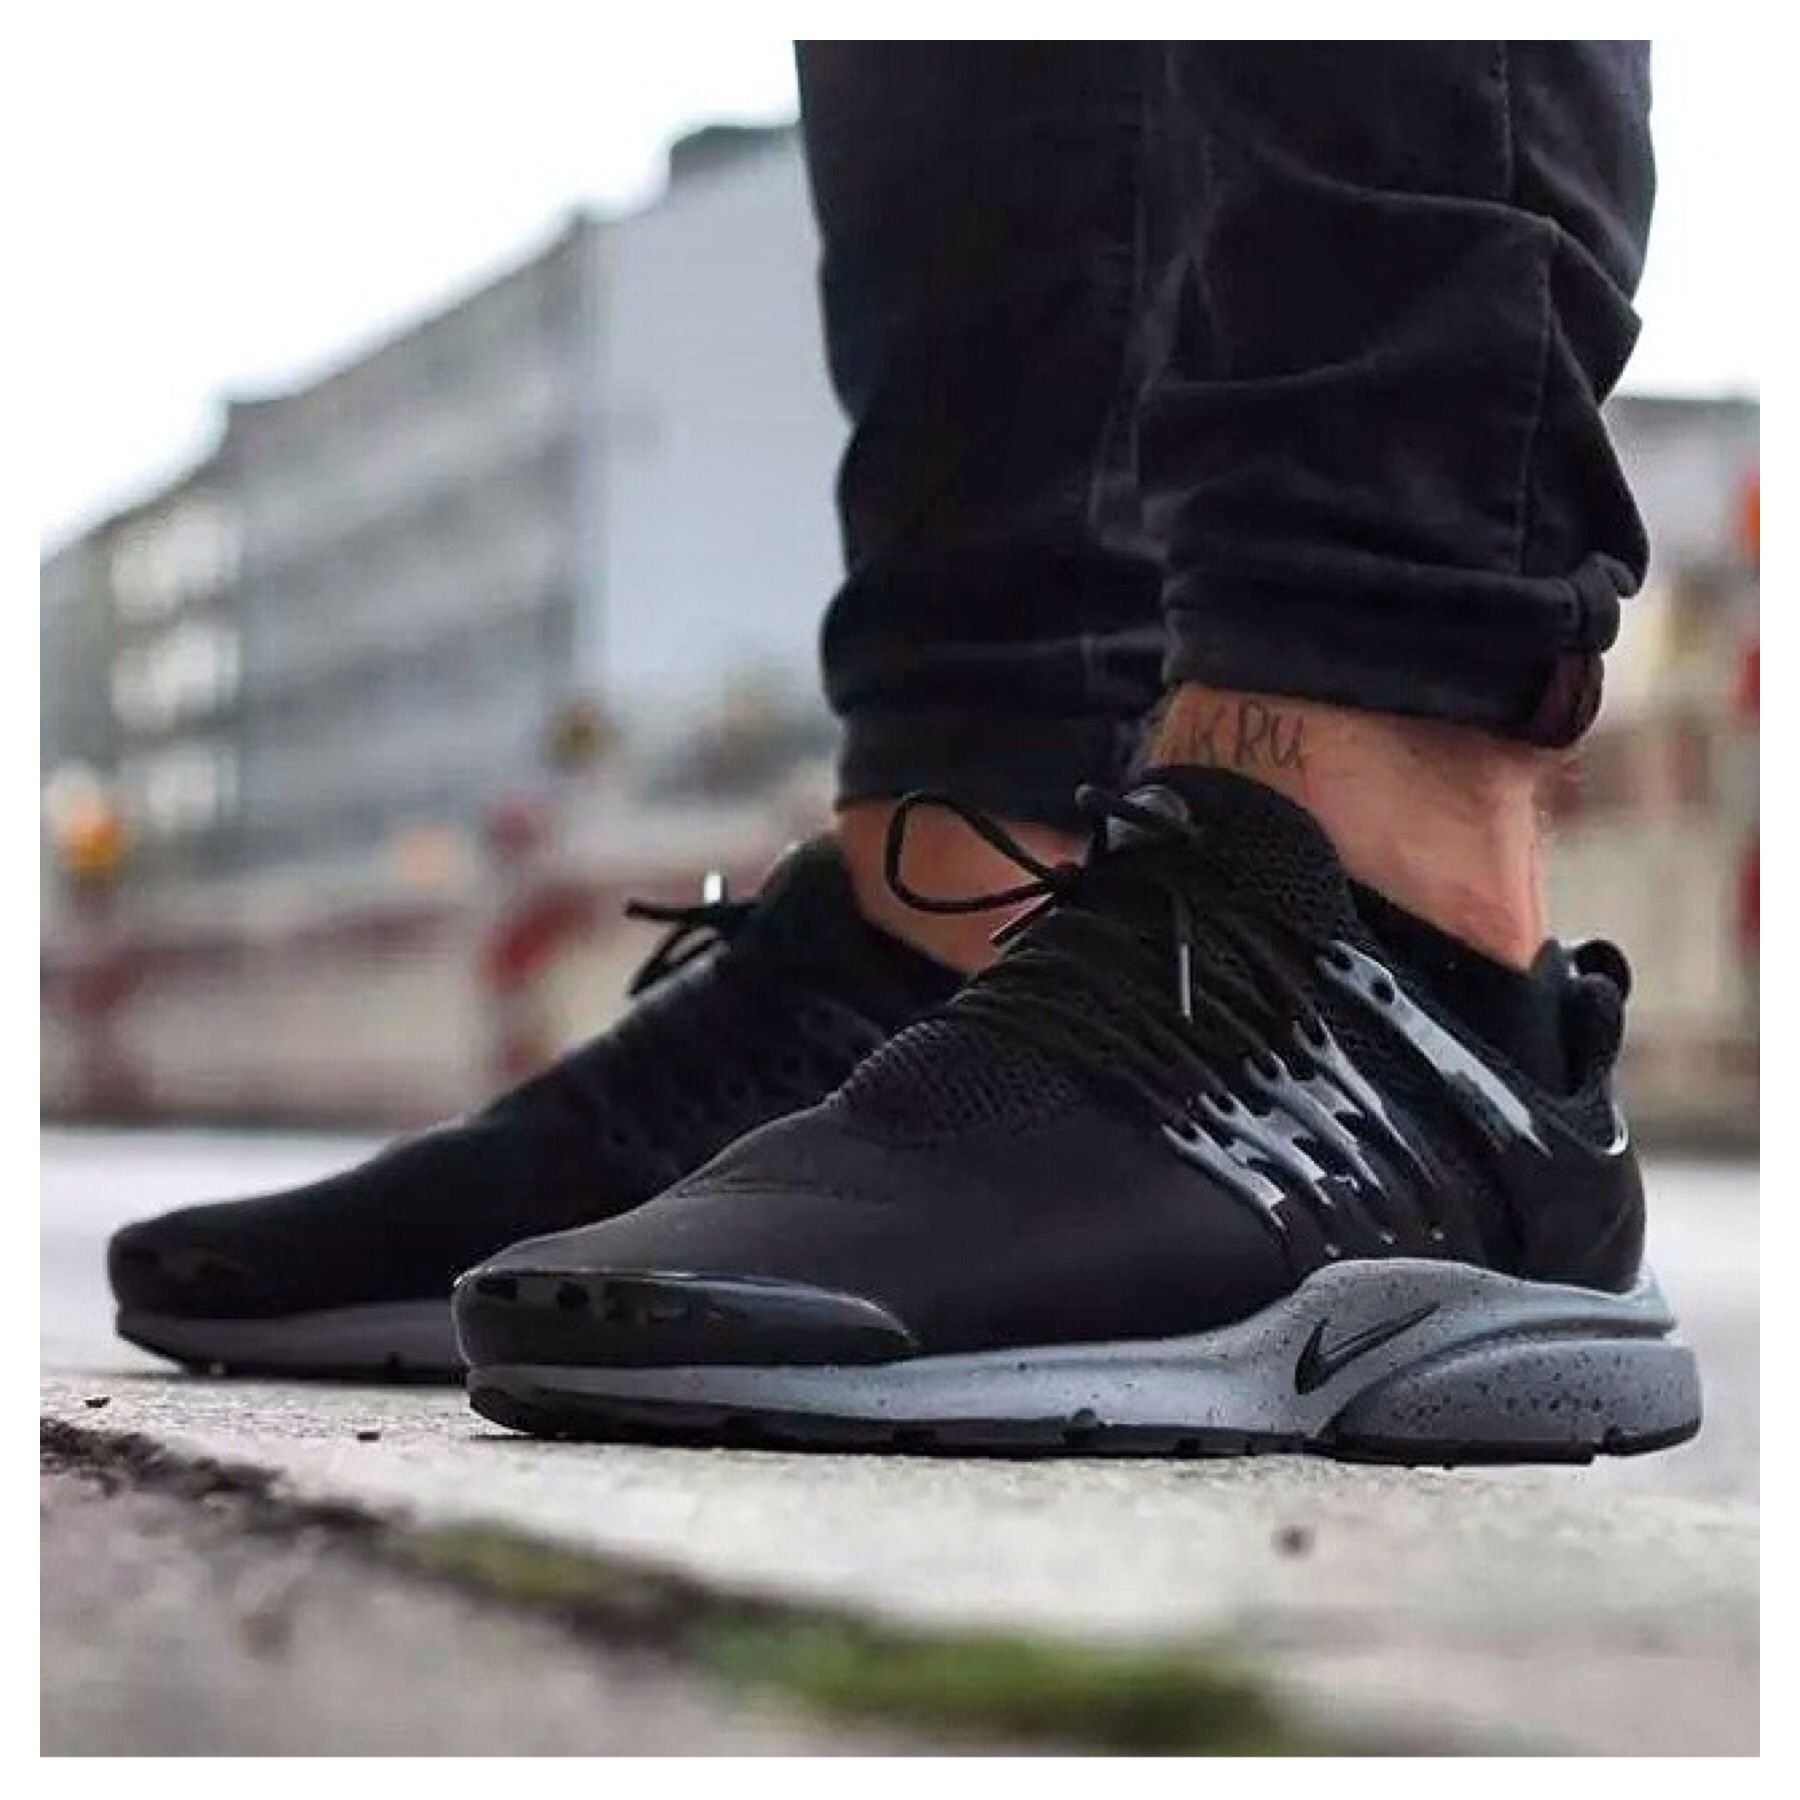 1a91c641d6da Another from the recent GENEALOGY OF FREE BLACK PACK... this time a sweet   otf shot of the excellent  NIKE AIR  PRESTO from  wbkruvali official ...